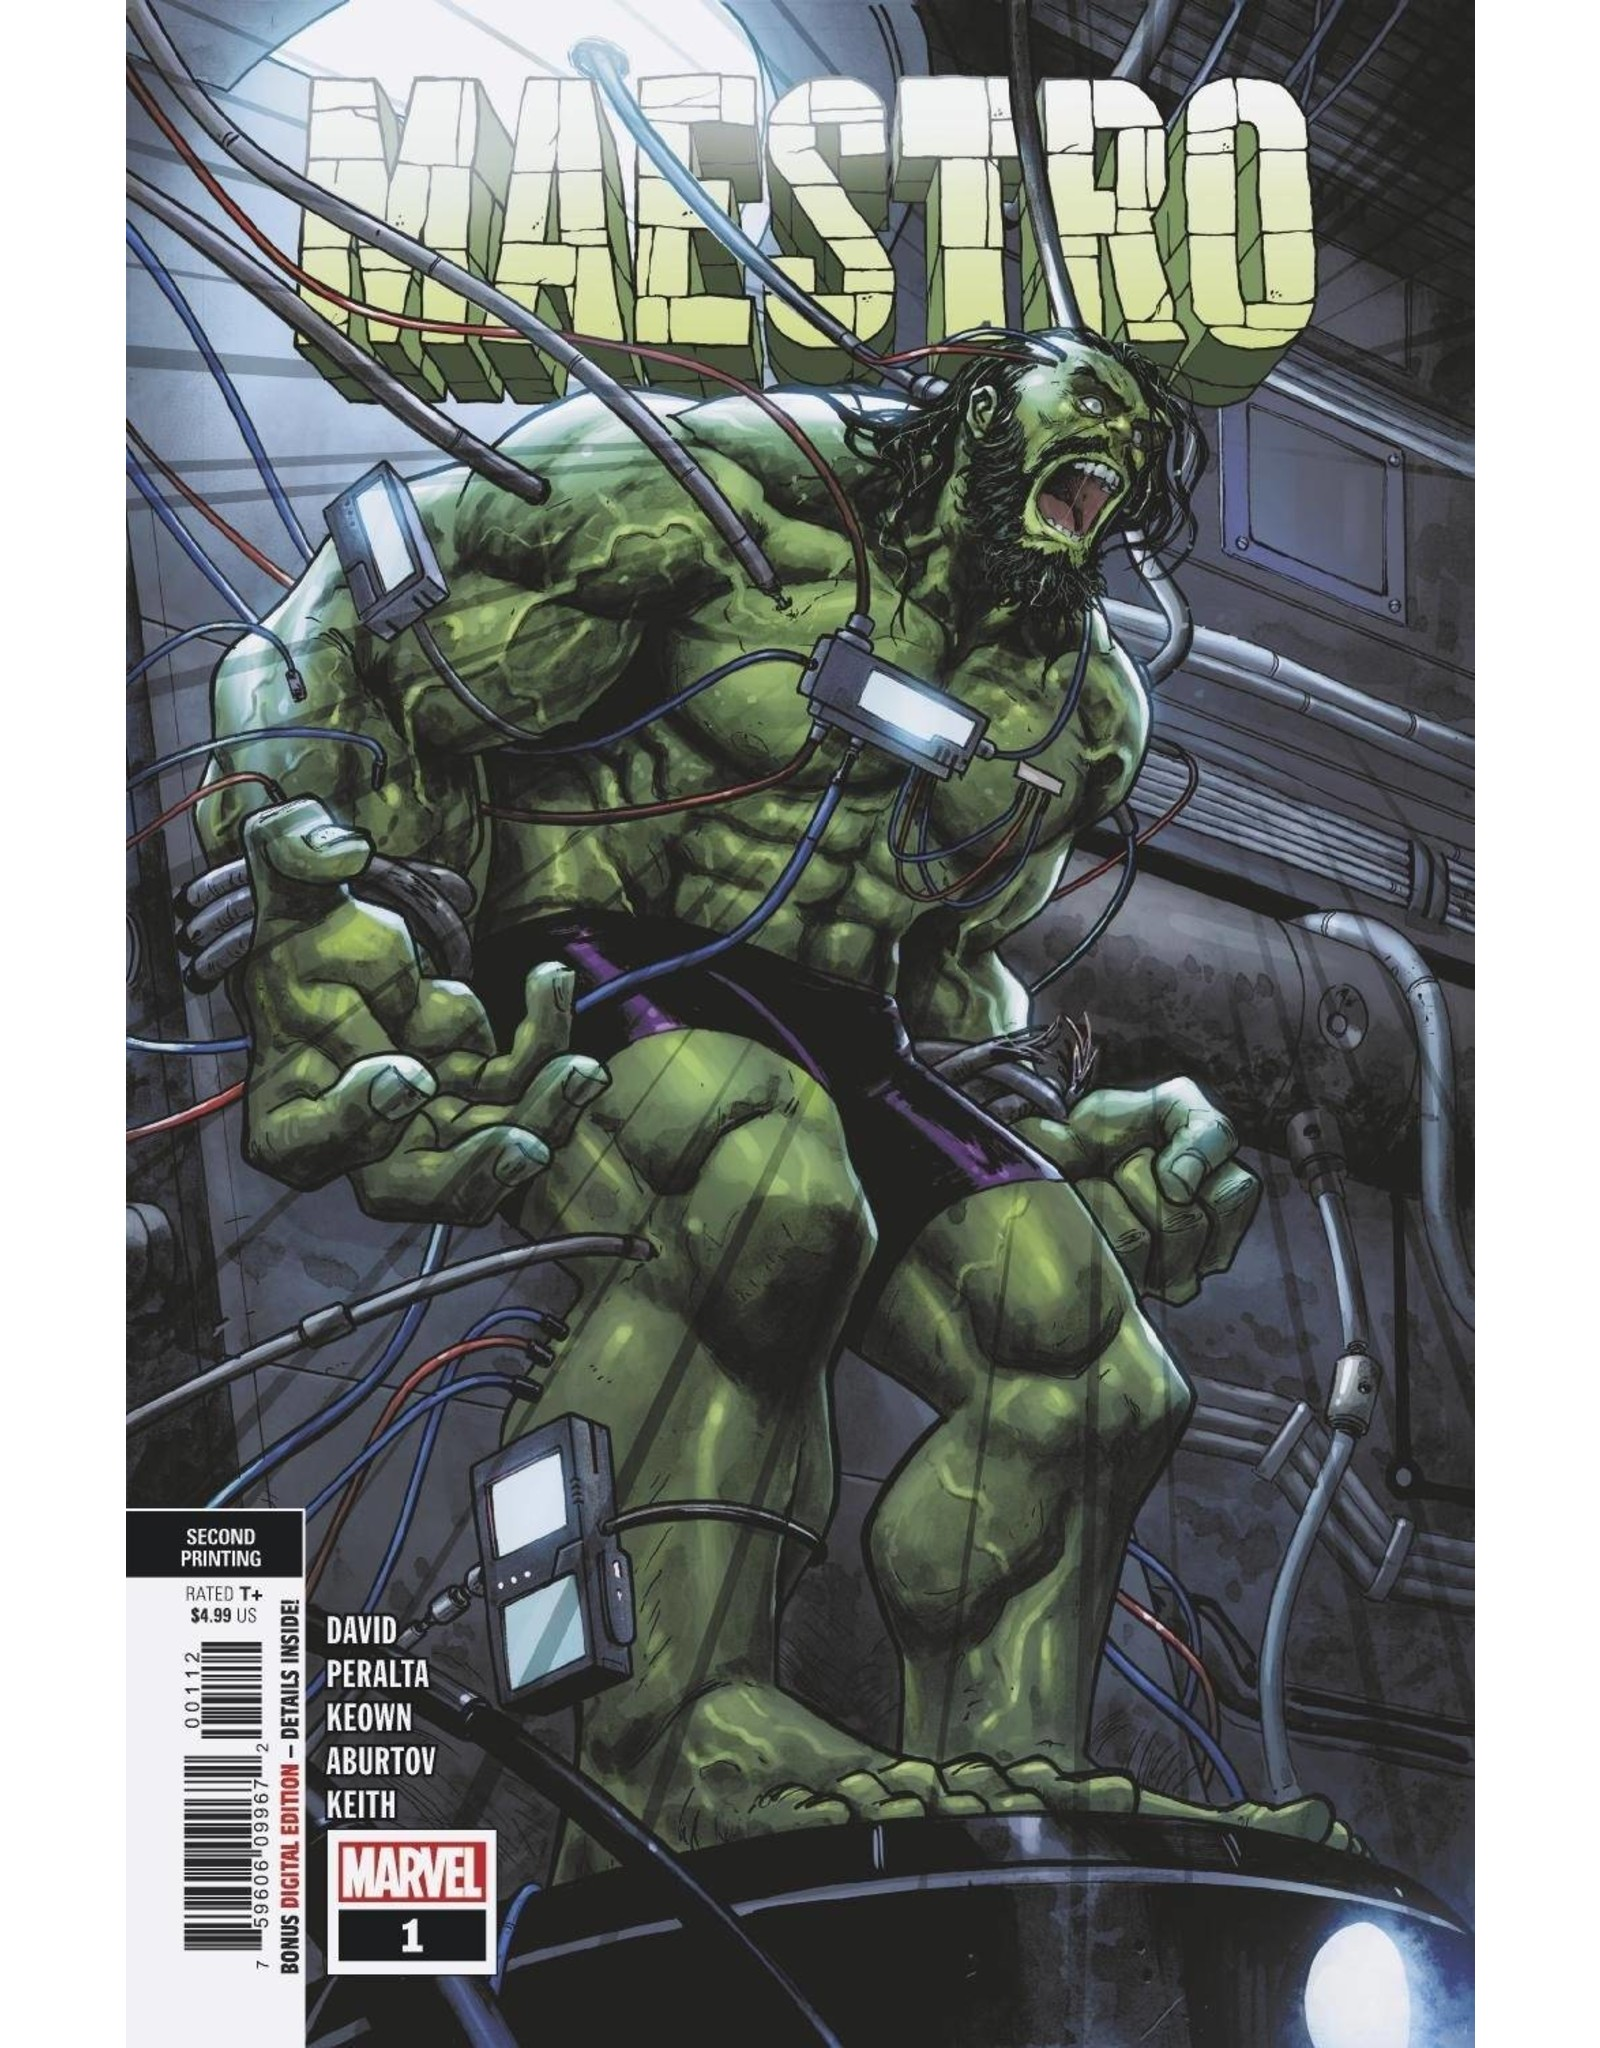 MARVEL COMICS MAESTRO #1 (OF 5) 2ND PTG VAR